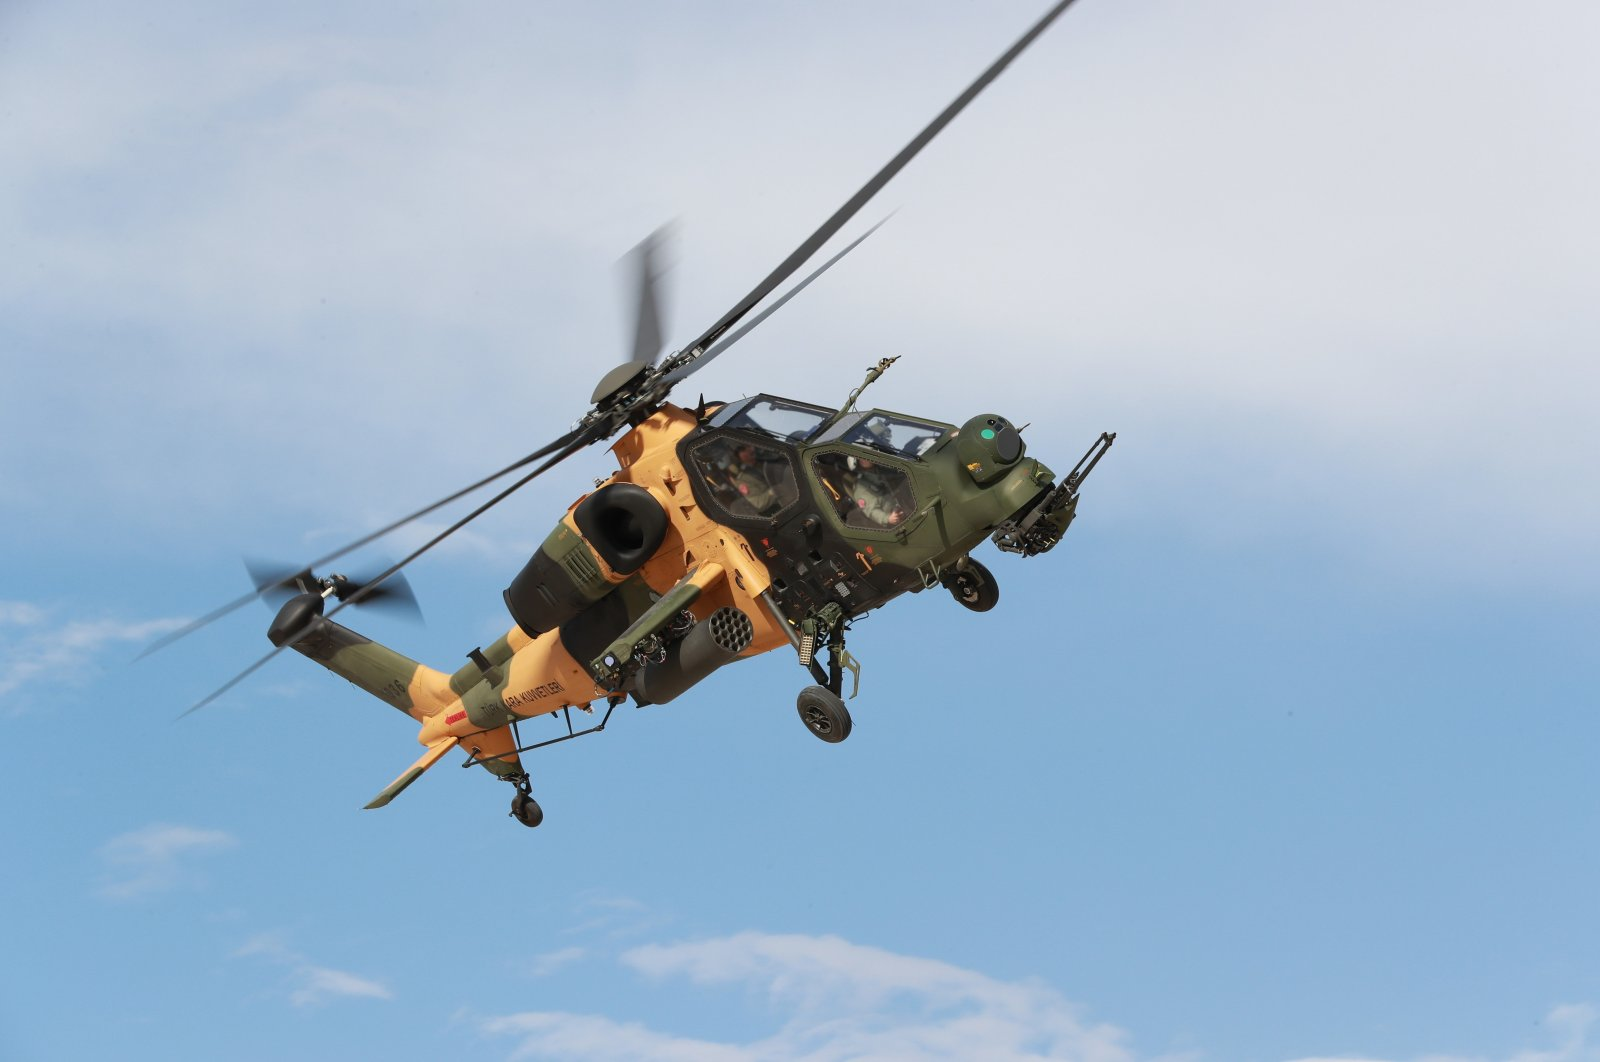 A TAI-made ATAK helicopter is seen flying in the sky in this photo provided on July 13, 2021. (IHA Photo)